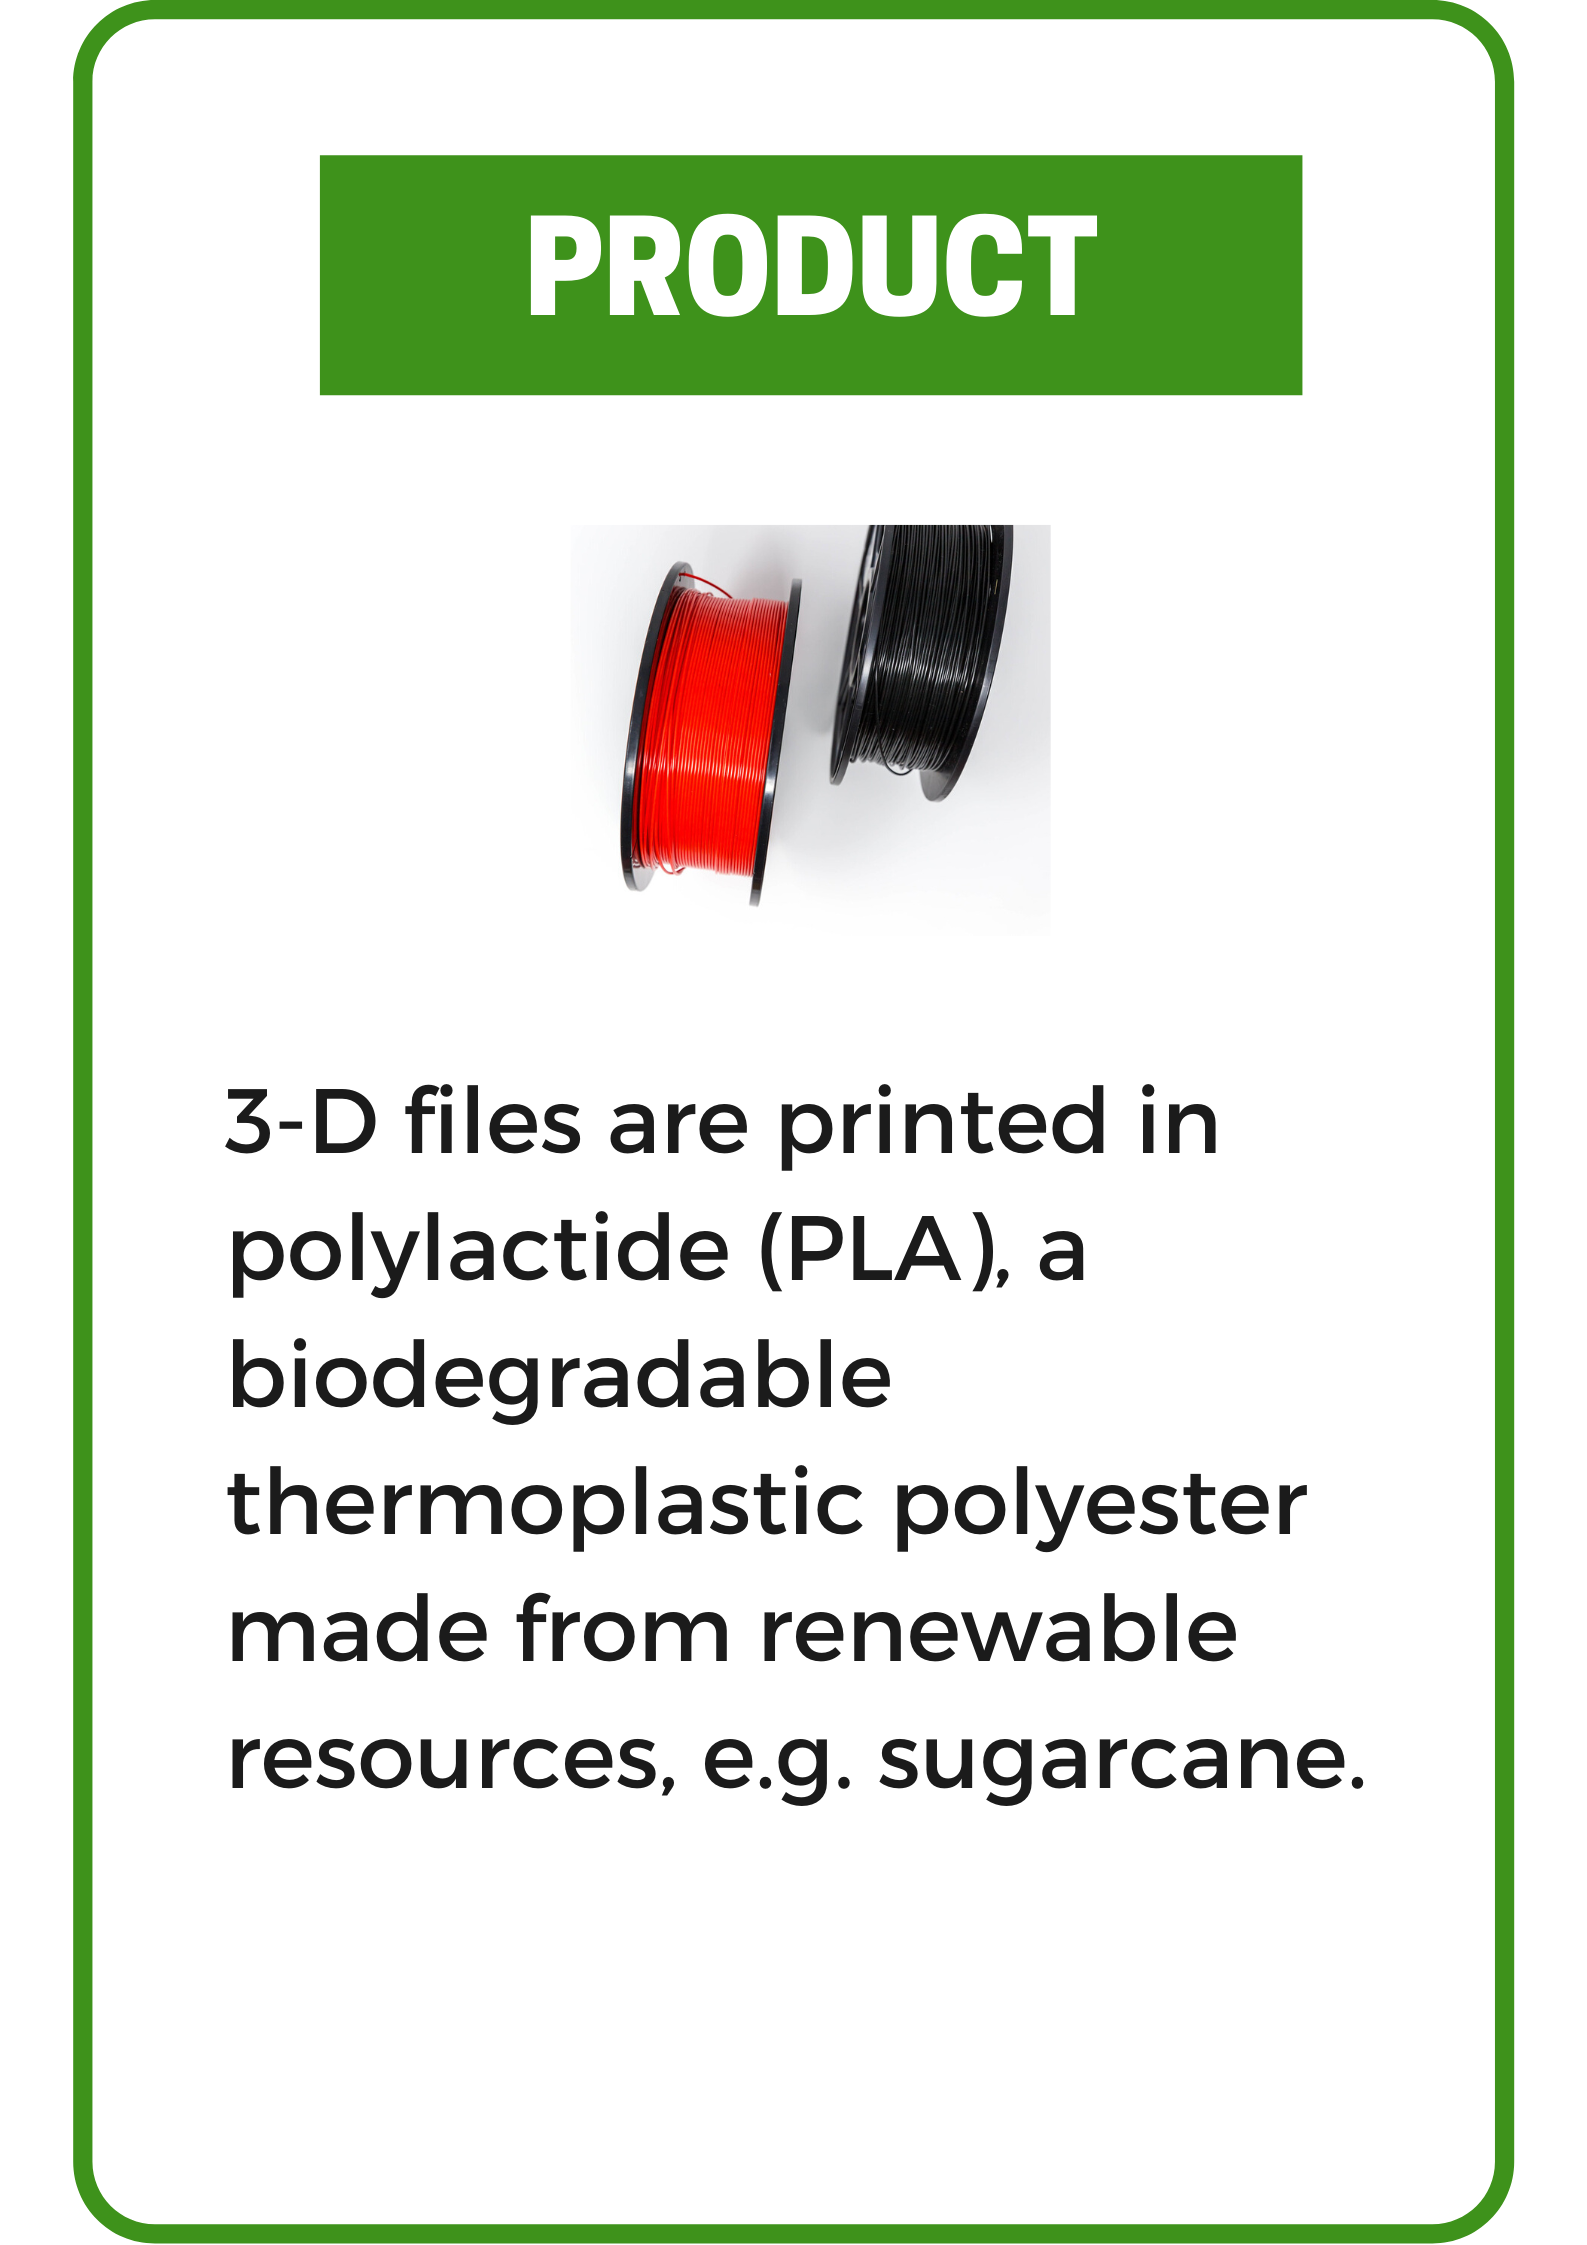 3-D Printing Service: 3-D files are printed in polylactide (PLA)